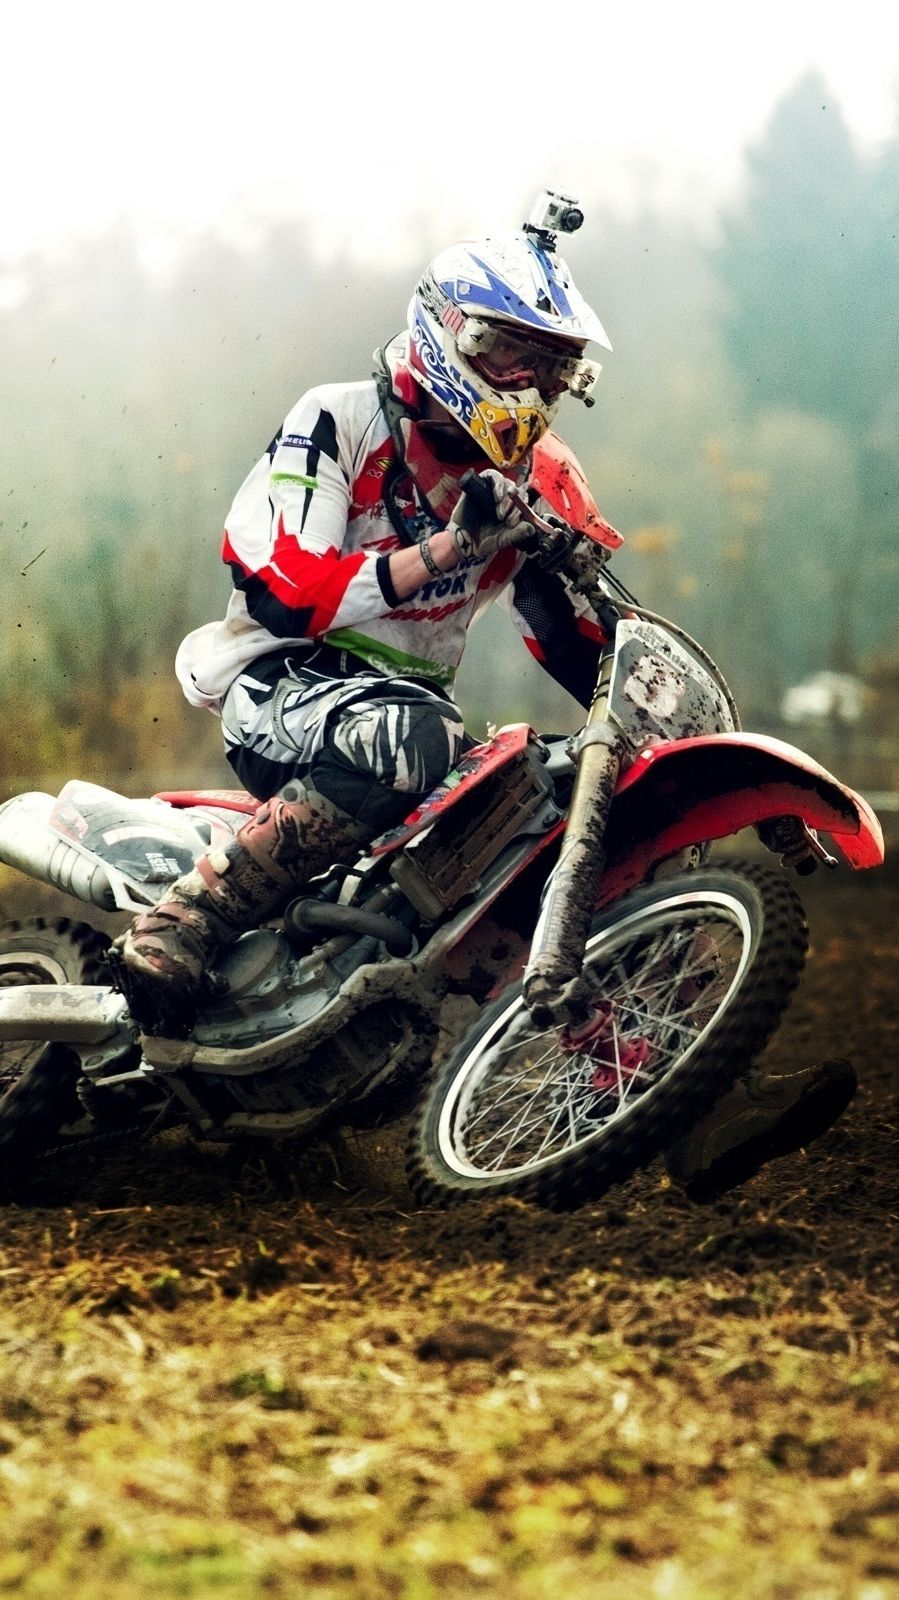 Mud Motocross Iphone Wallpaper In 2020 Hd Anime Wallpapers